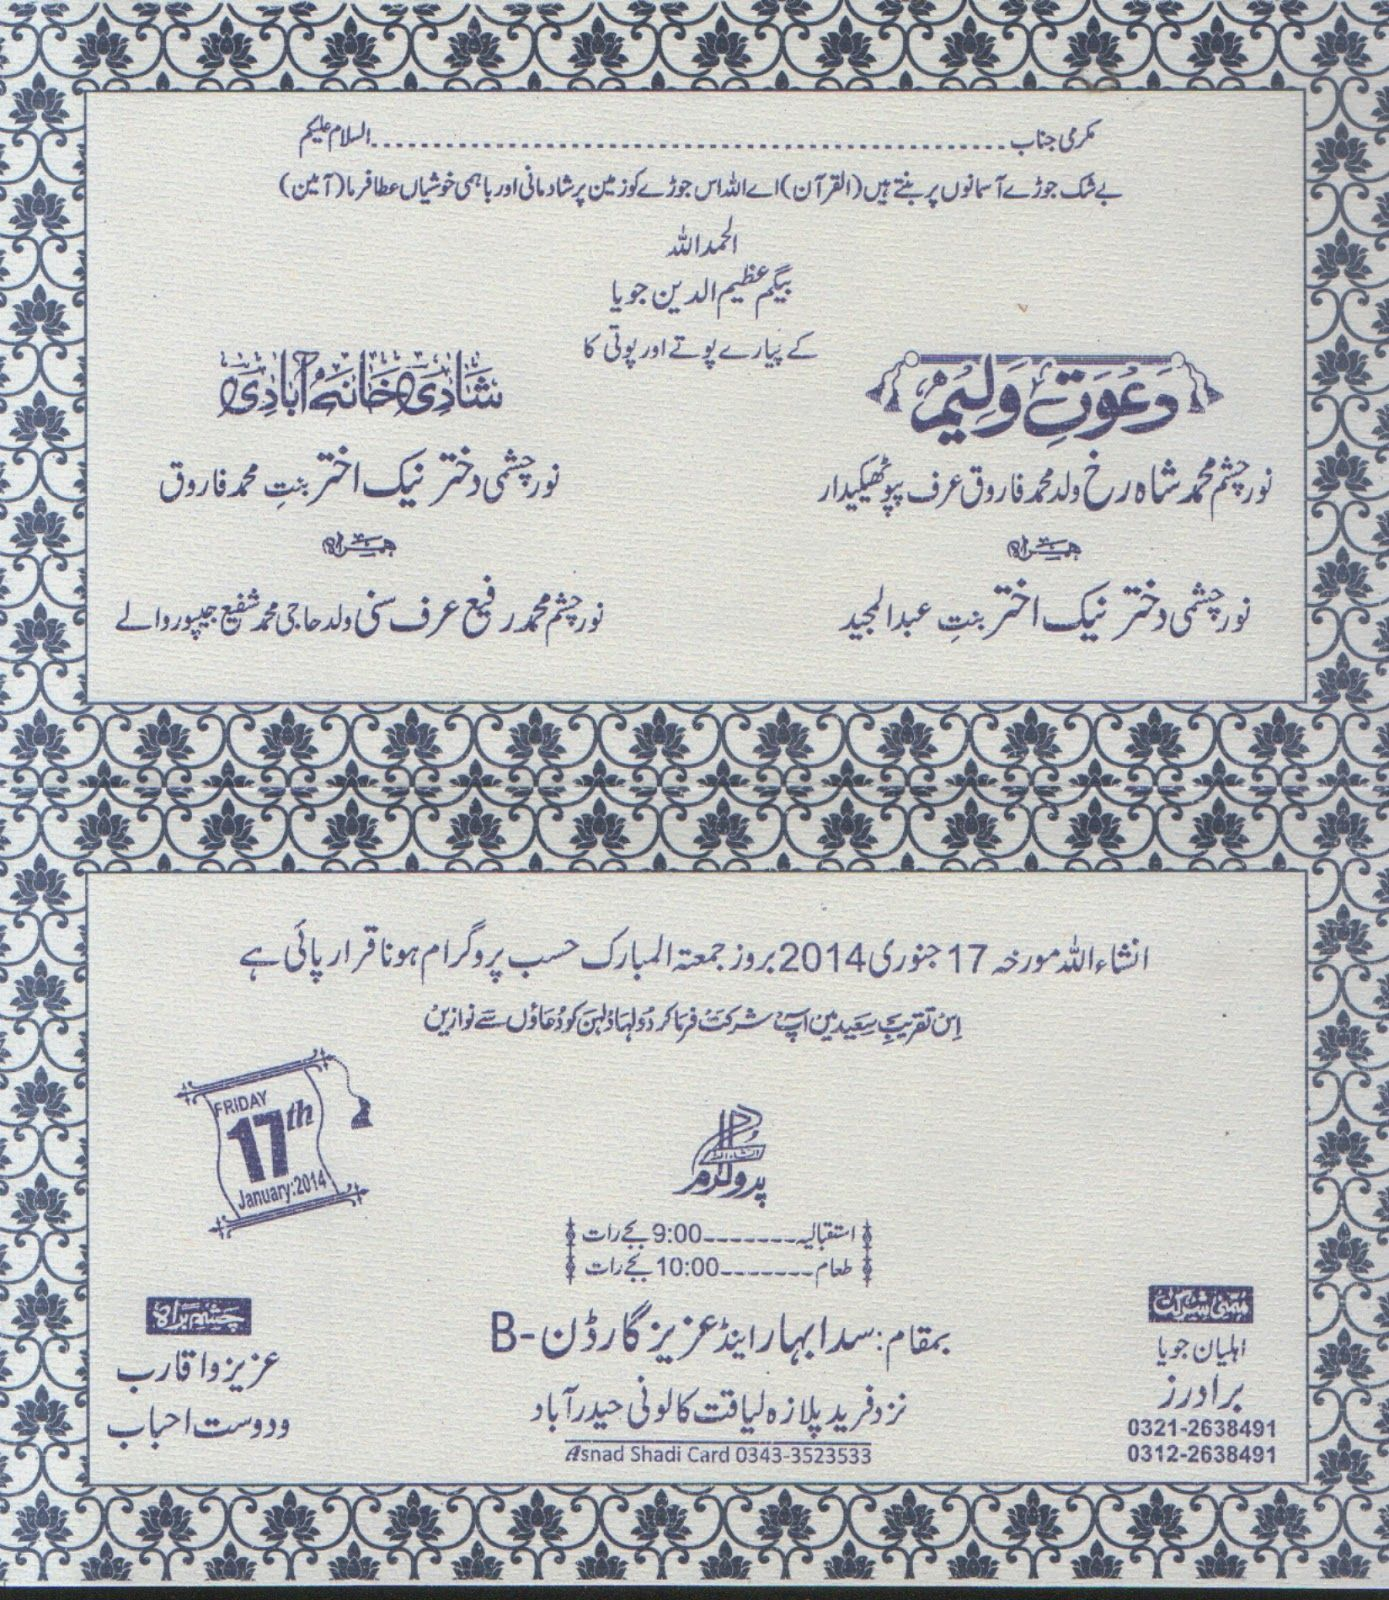 Marriage Invitation Card Format In English Pdf Marriage Invitation Card Format Marriage Invitation Card Invitation Card Format